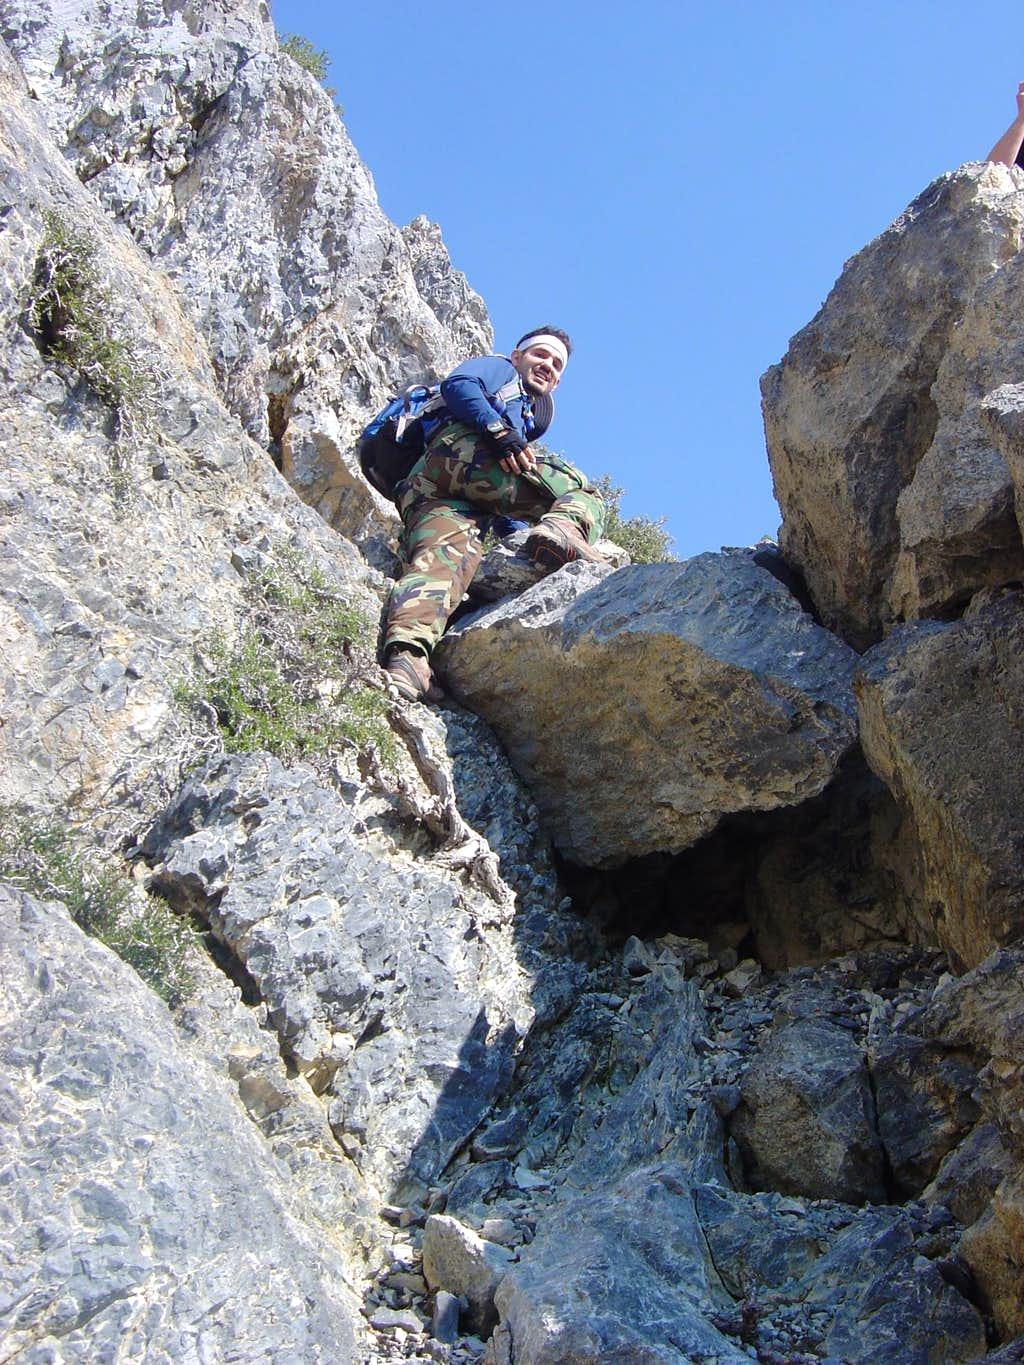 Me almost to the top